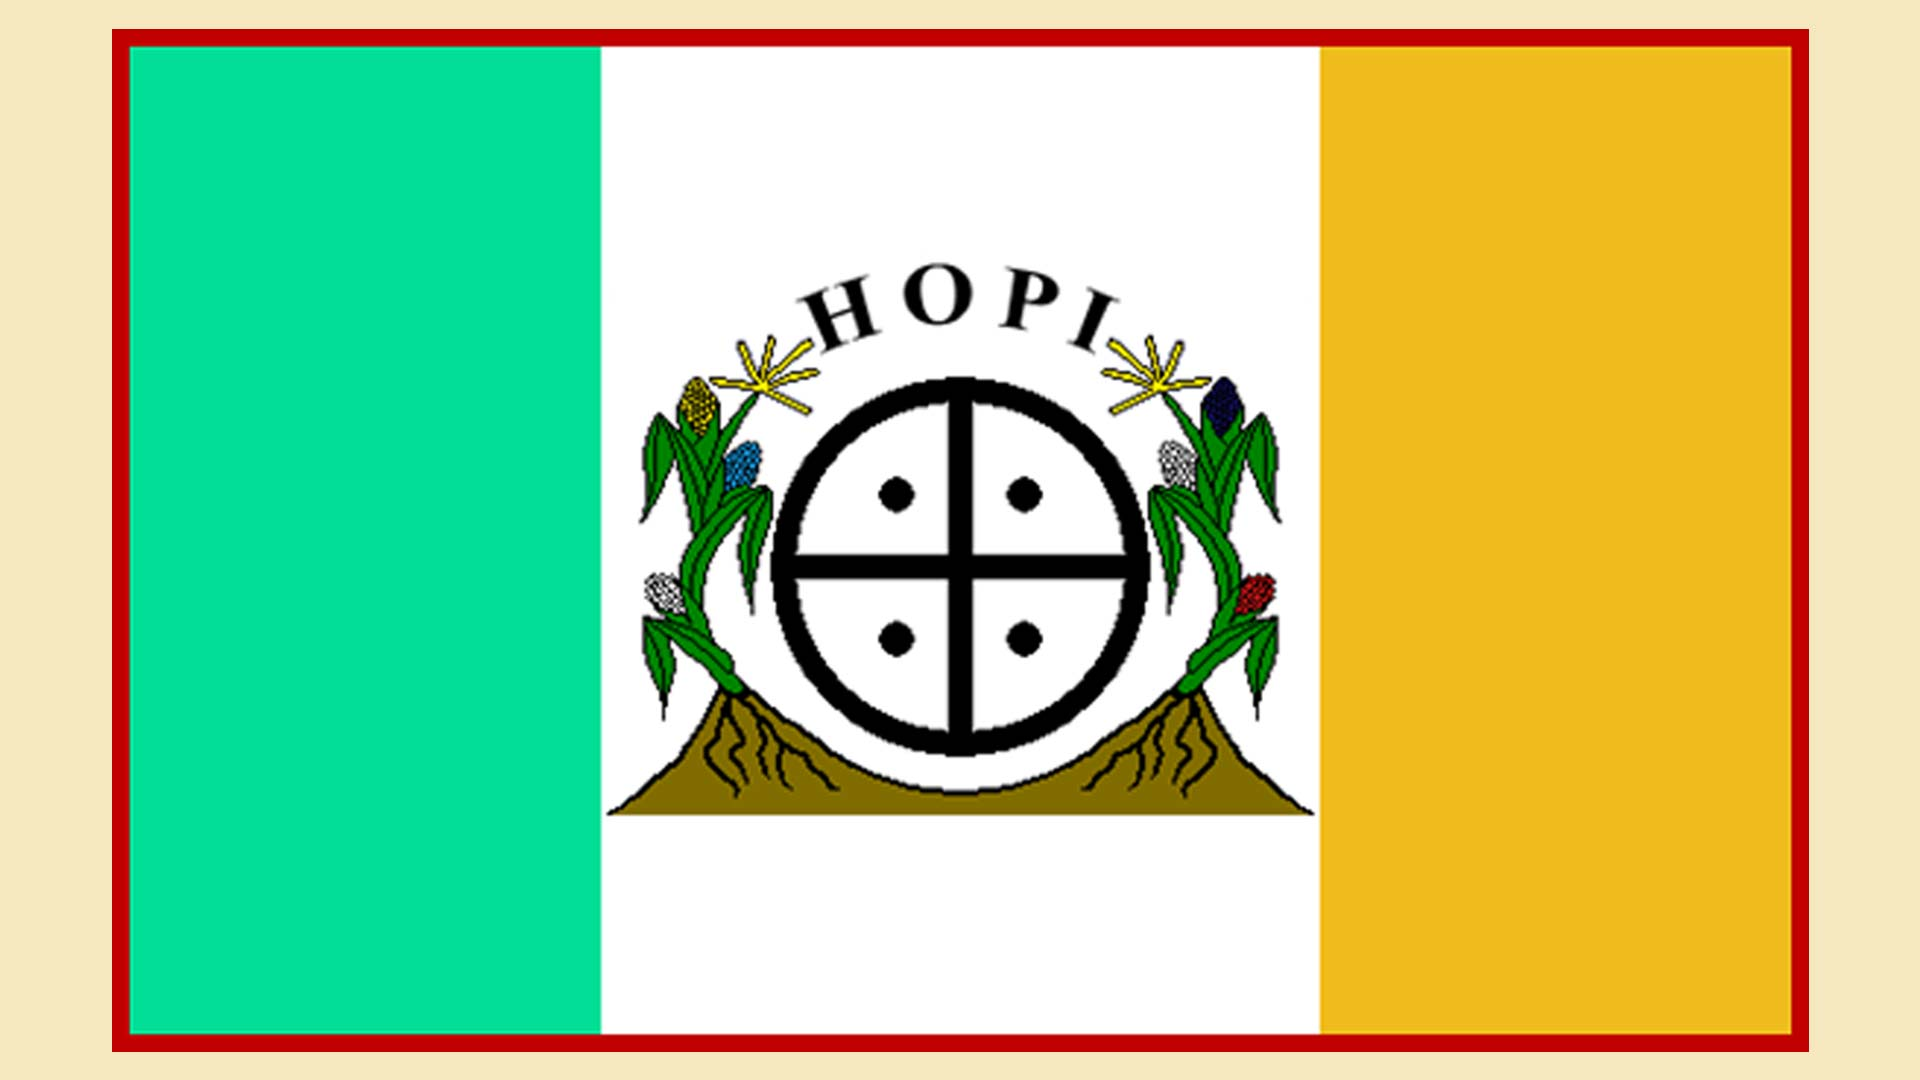 Flag of the Hopi Nation, adapted from www.hopi-nsn.gov.